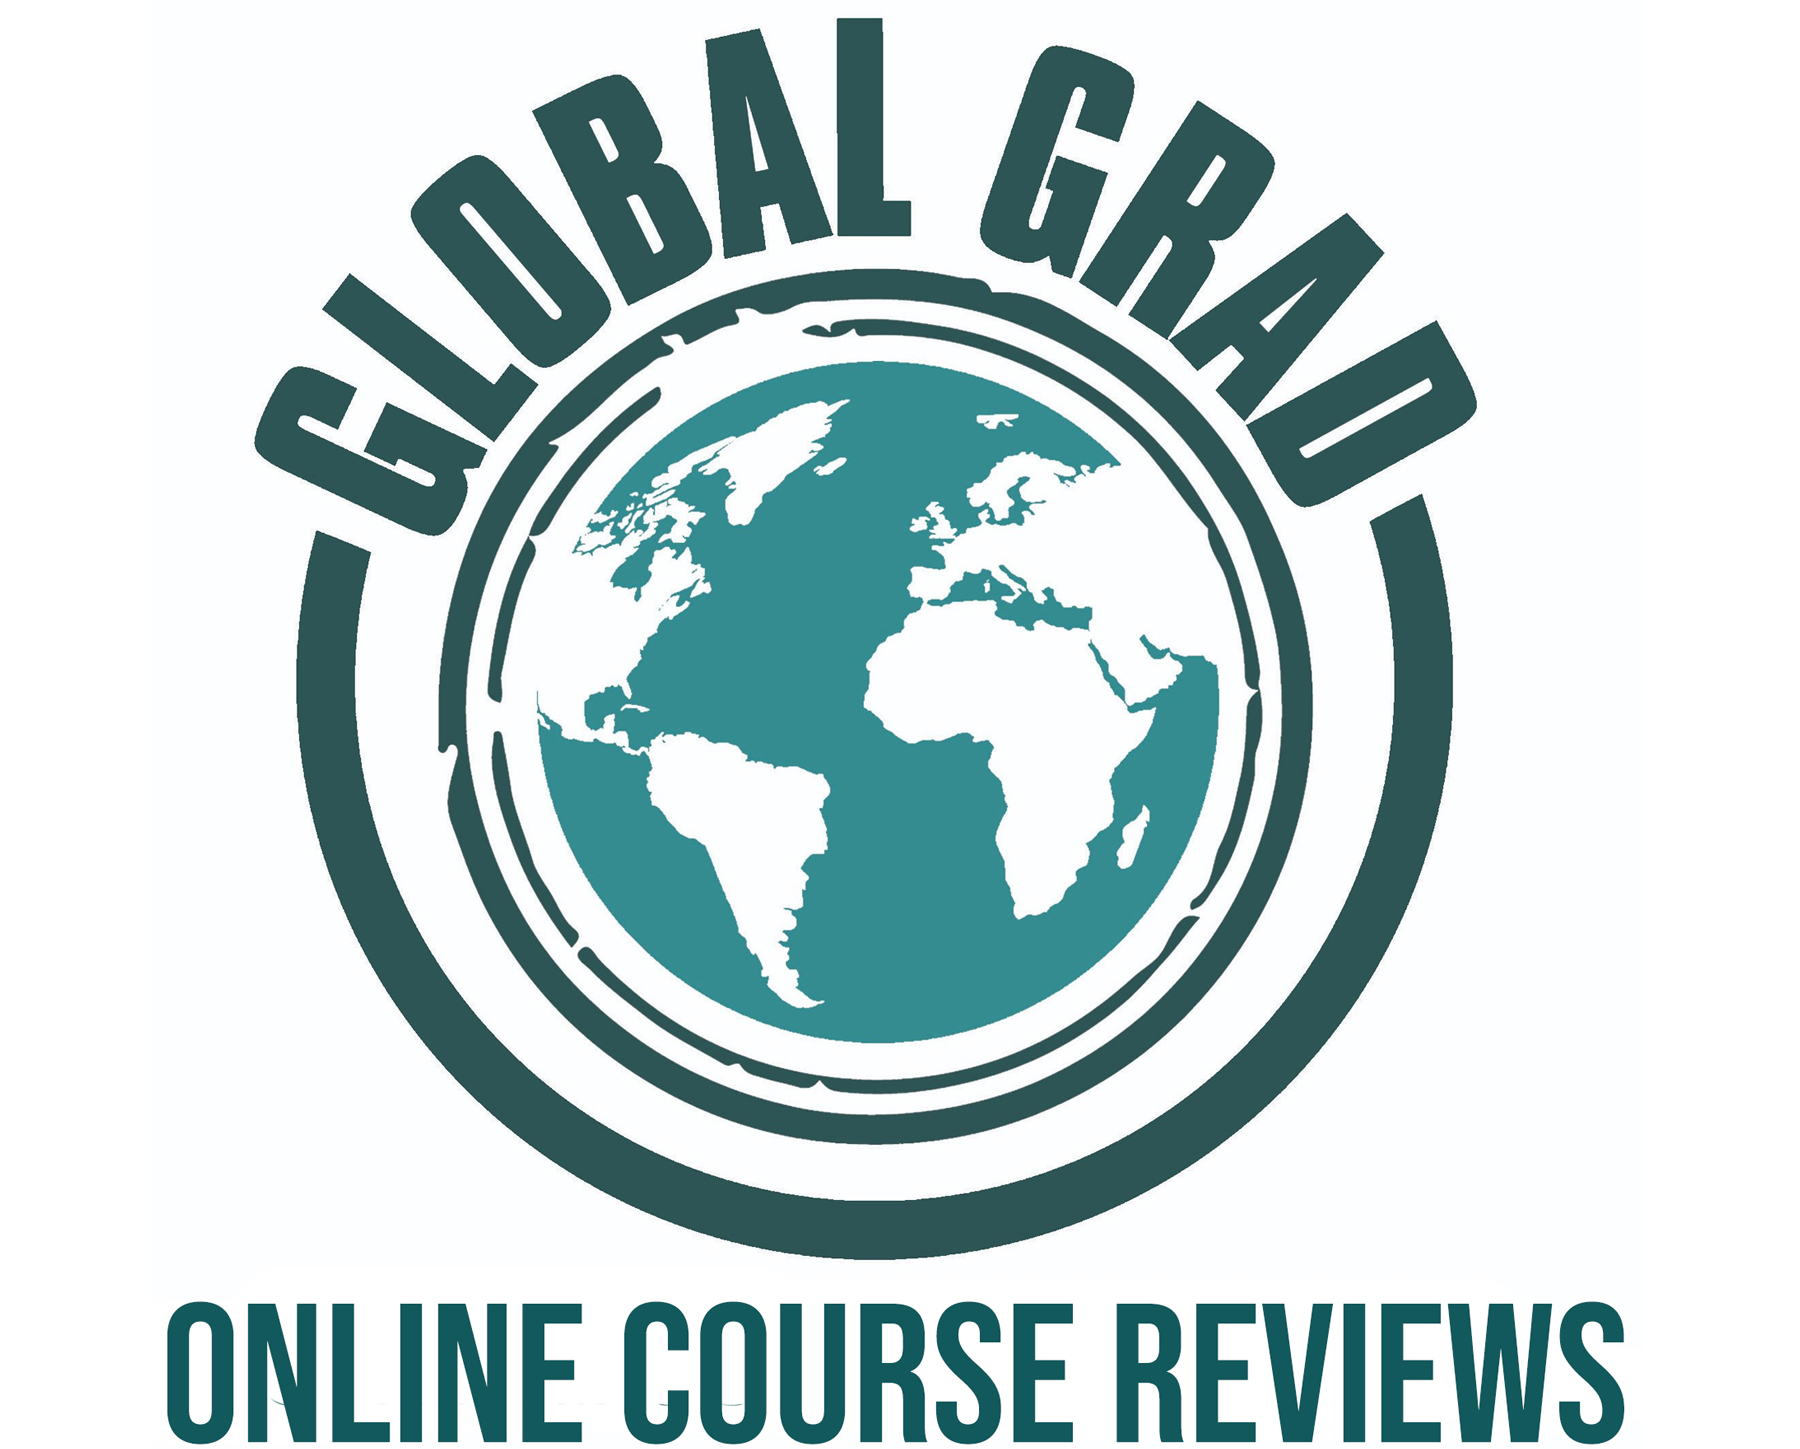 Online Course Reviews